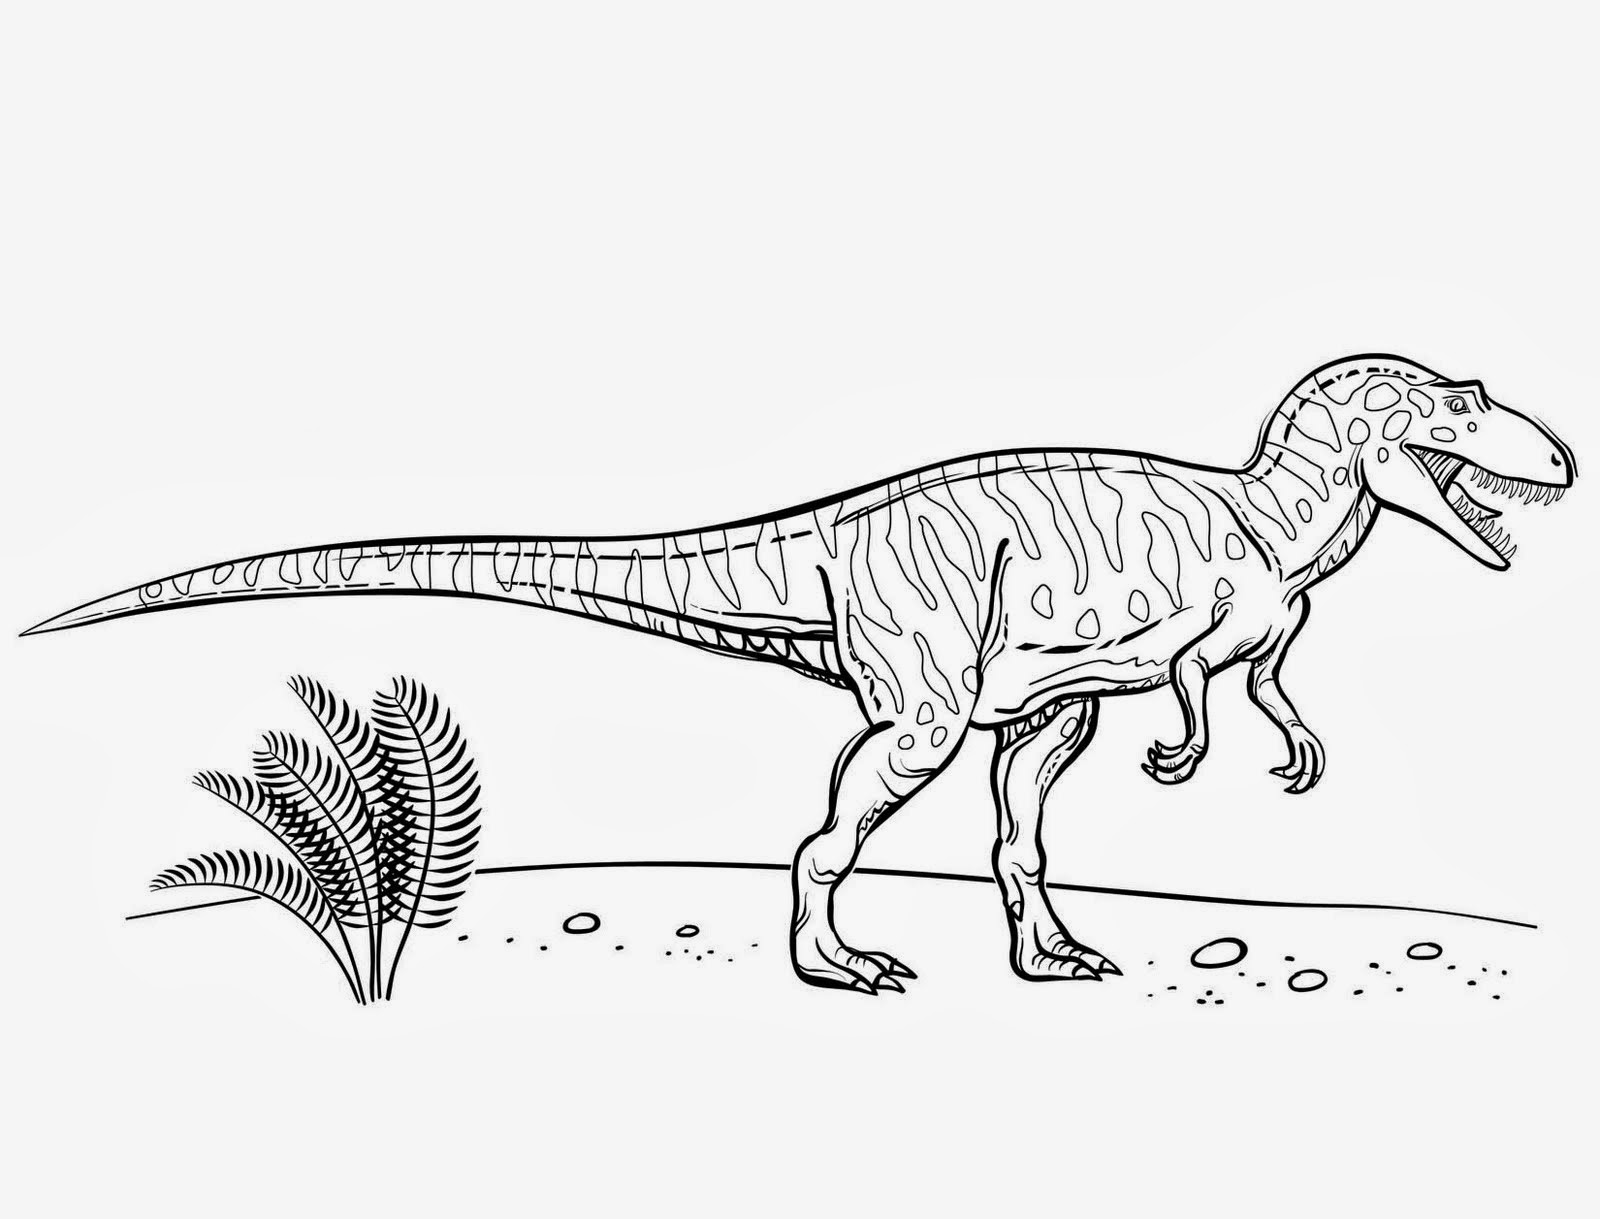 Educational dinosaur coloring pages - Educational Dinosaur Coloring Pages 42